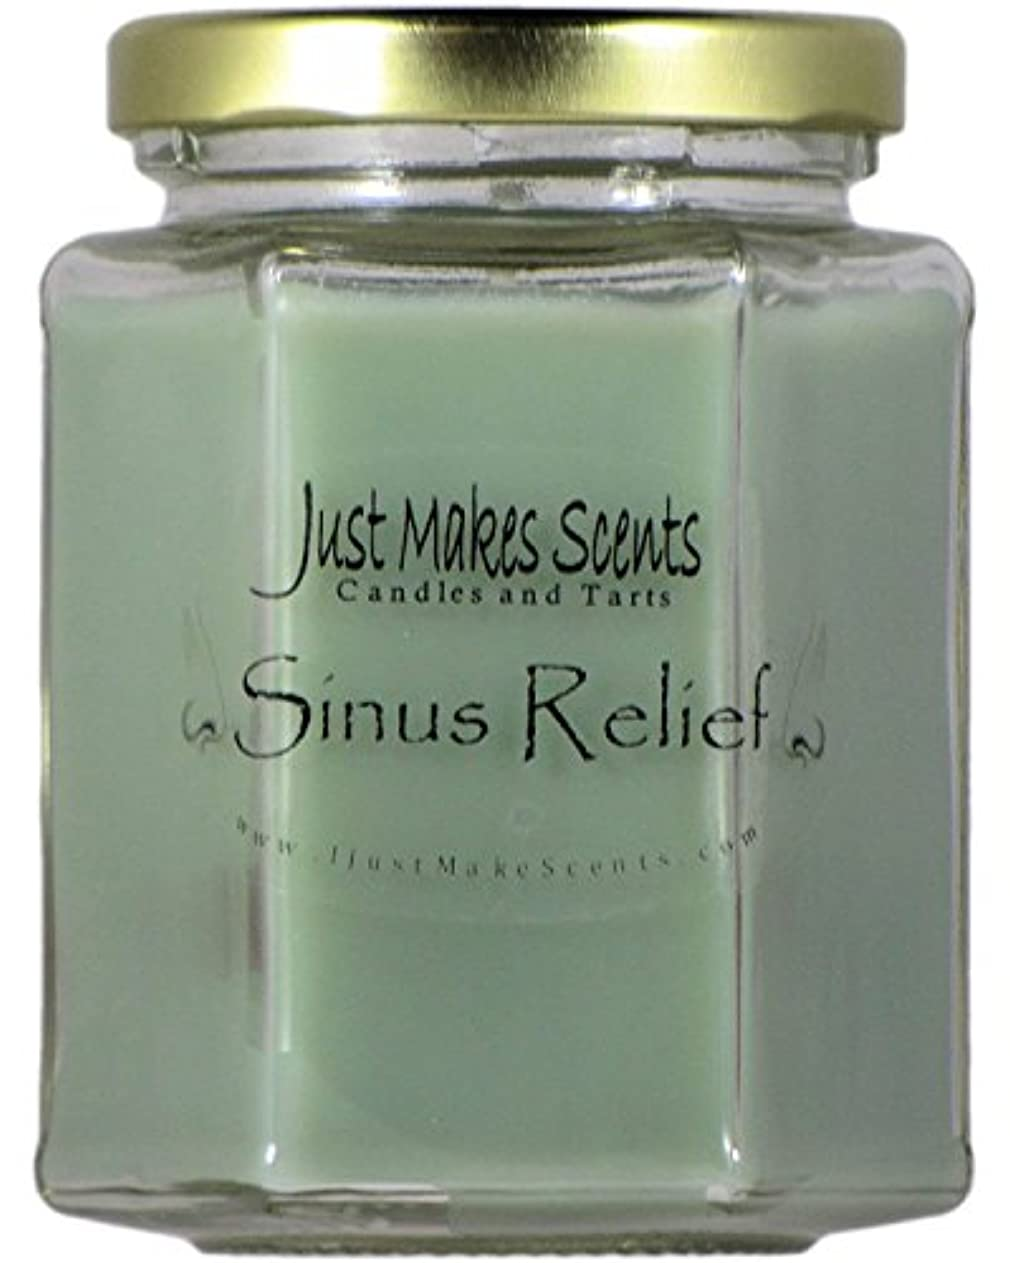 雪だるまを作る残り軍Sinus Relief ( Vicks Vapor Rubタイプ)香りつきBlended Soy Candle by Just Makes Scents ( 8オンス)